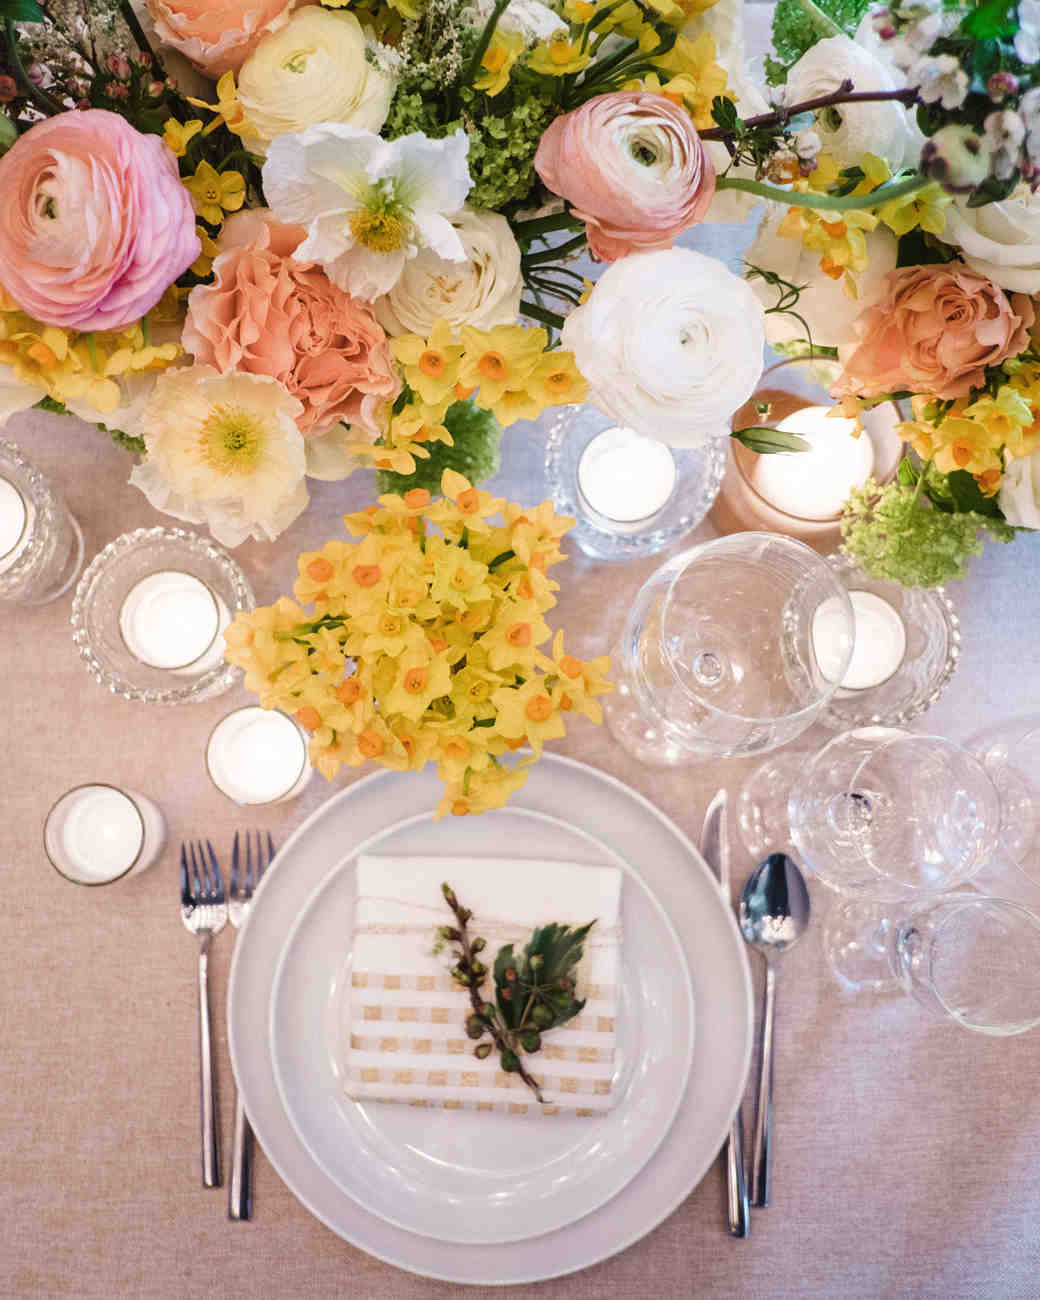 Darcy's Diary: Go Inside the Martha Stewart Wedding Party in Chicago!